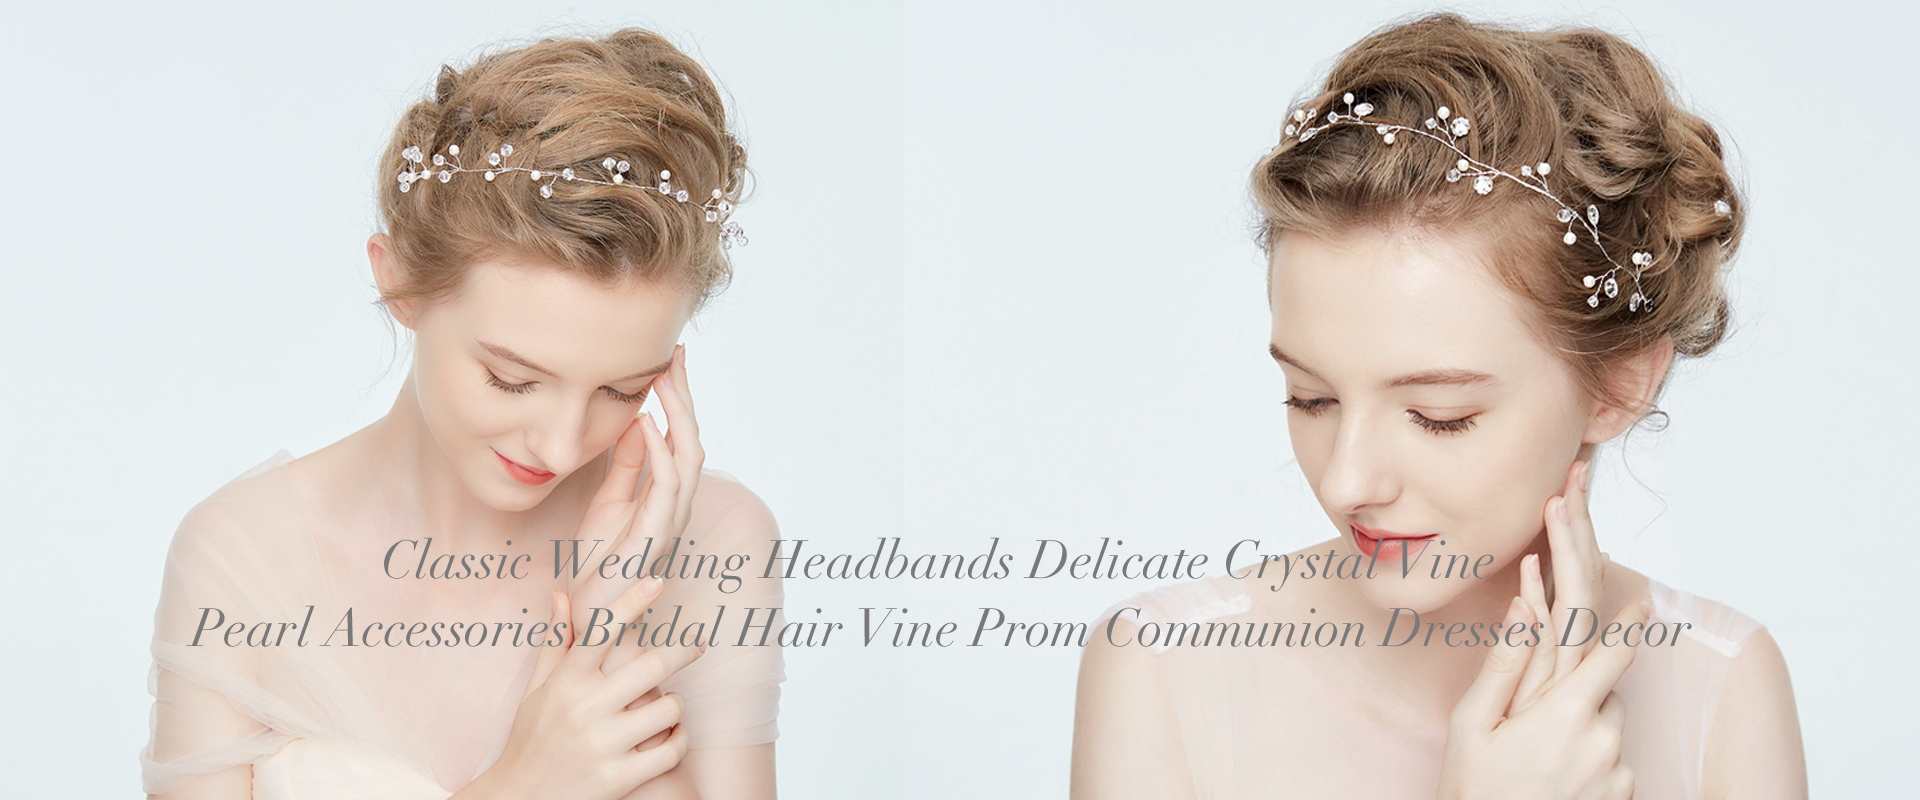 Amelie Bridal Headpieces Studio - Small Orders Online Store, Hot ...